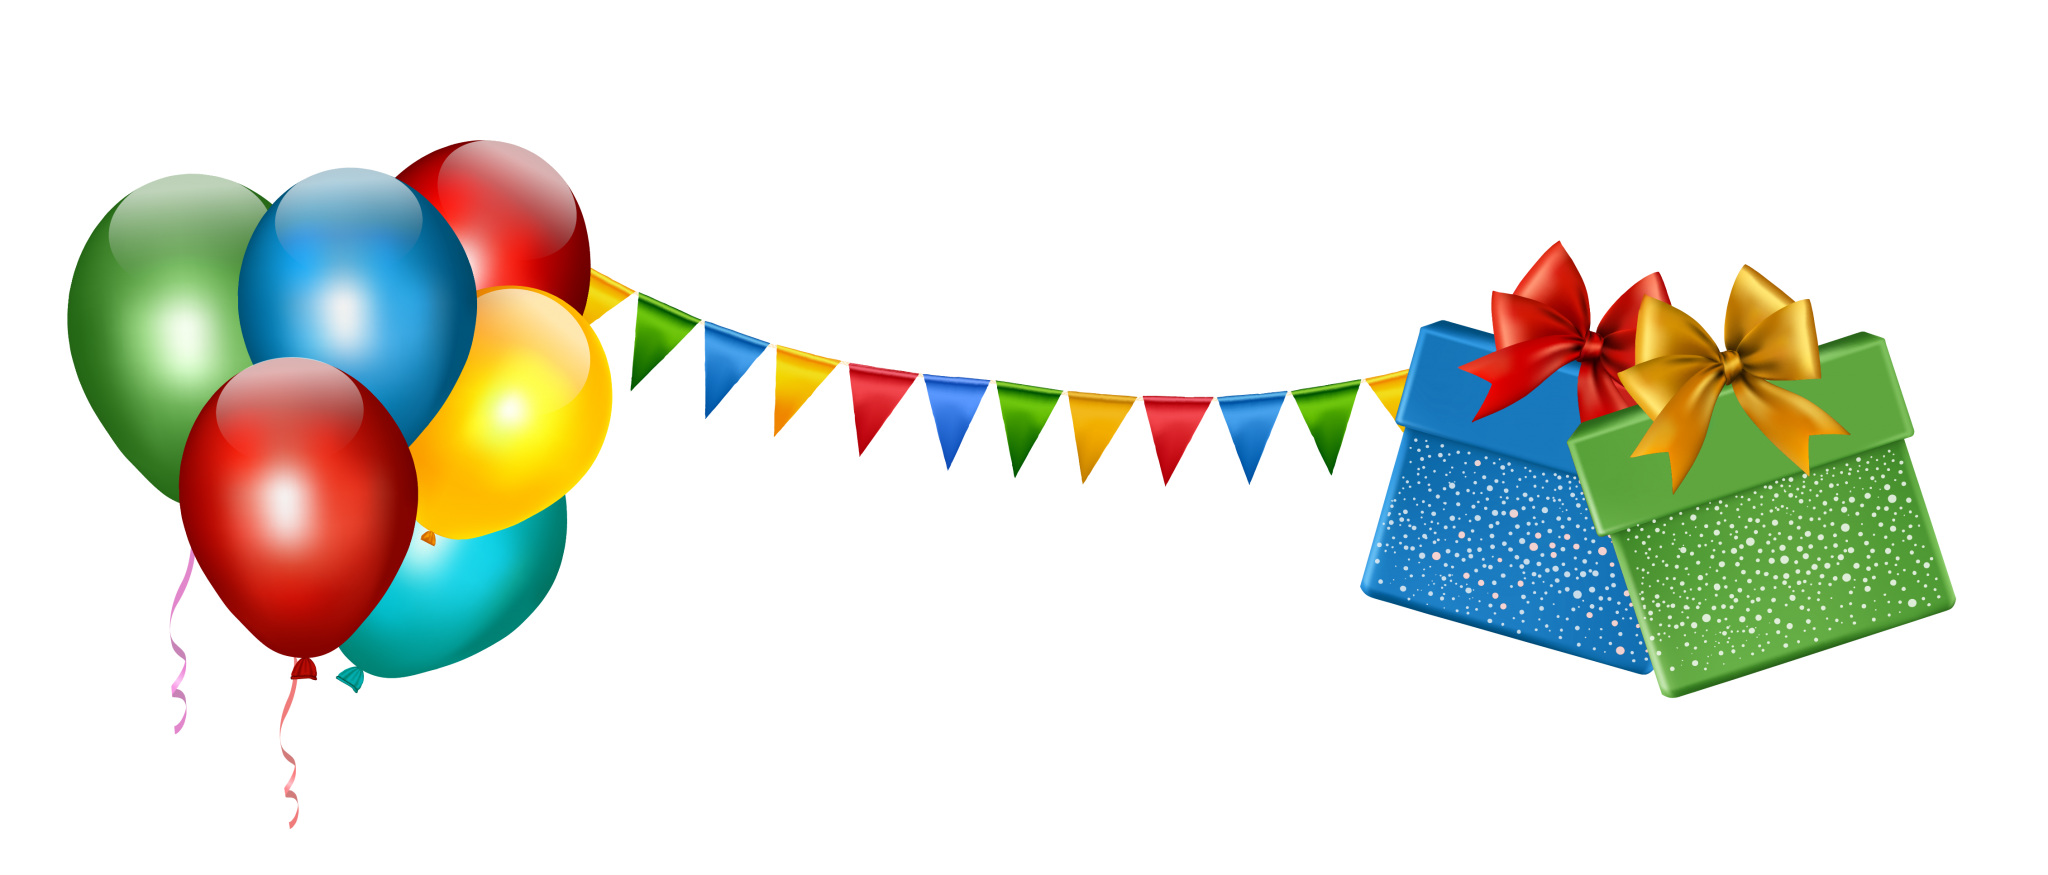 Birthday background png. Hd transparent images pluspng graphic royalty free